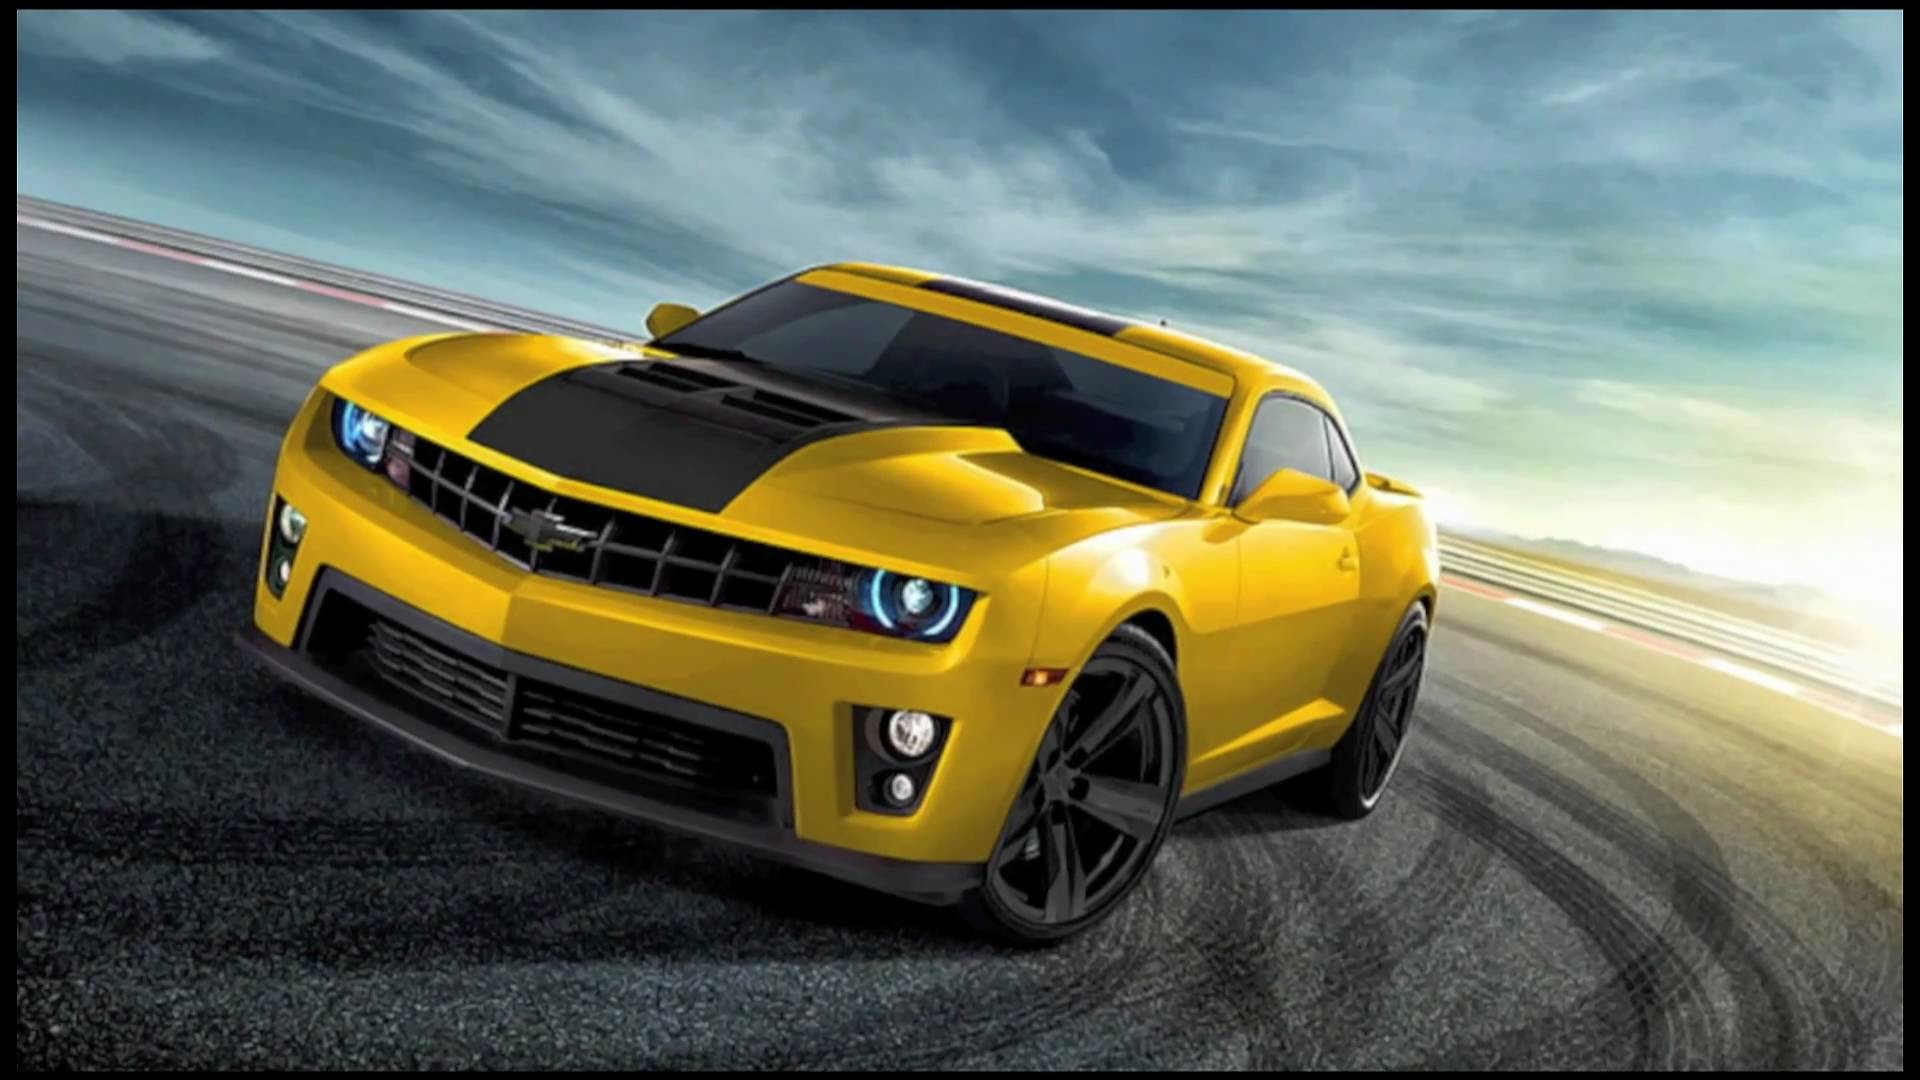 Res: 1920x1080, Chevrolet Camaro Zl1 Background For Wallpaper Idea